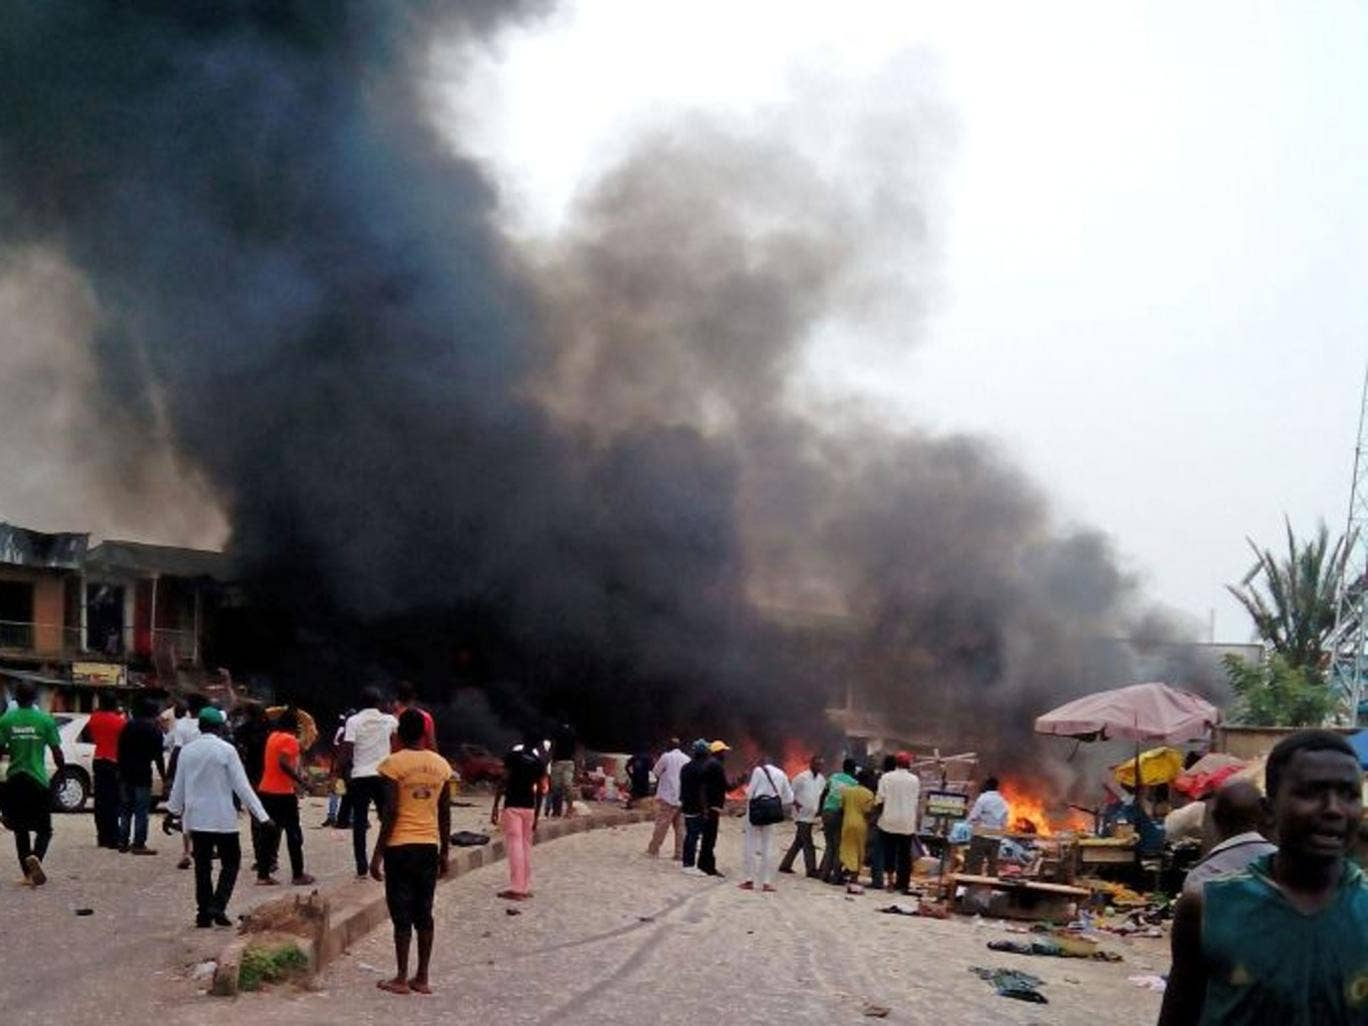 Smoke rises after a bomb blast at a bus terminal in Jos, Nigeria, Tuesday, May 20, 2014. Two explosions ripped through a bustling bus terminal and market frequented by thousands of people in Nigeria's central city of Jos on Tuesday afternoon, and police s